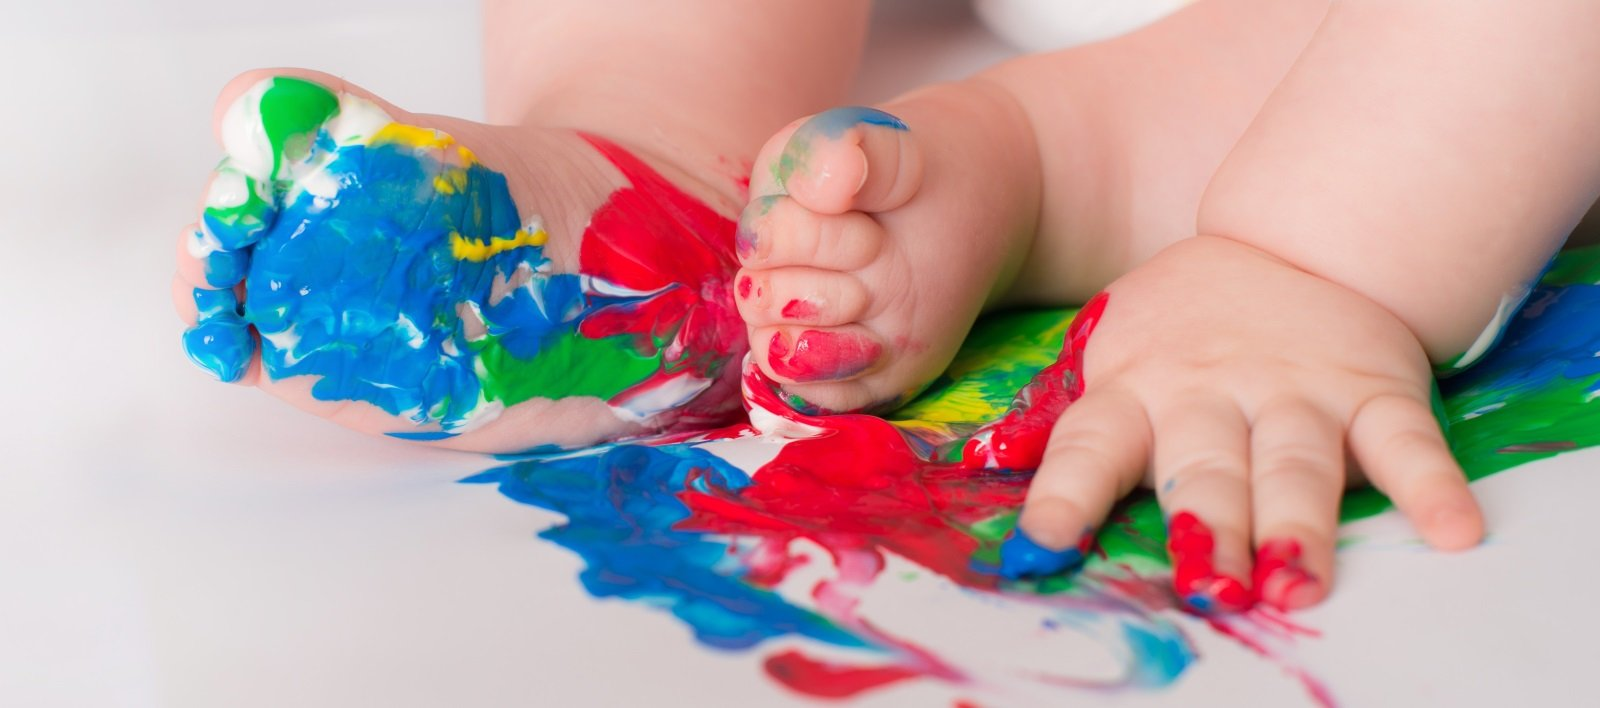 Arts, Craft & Messy Play